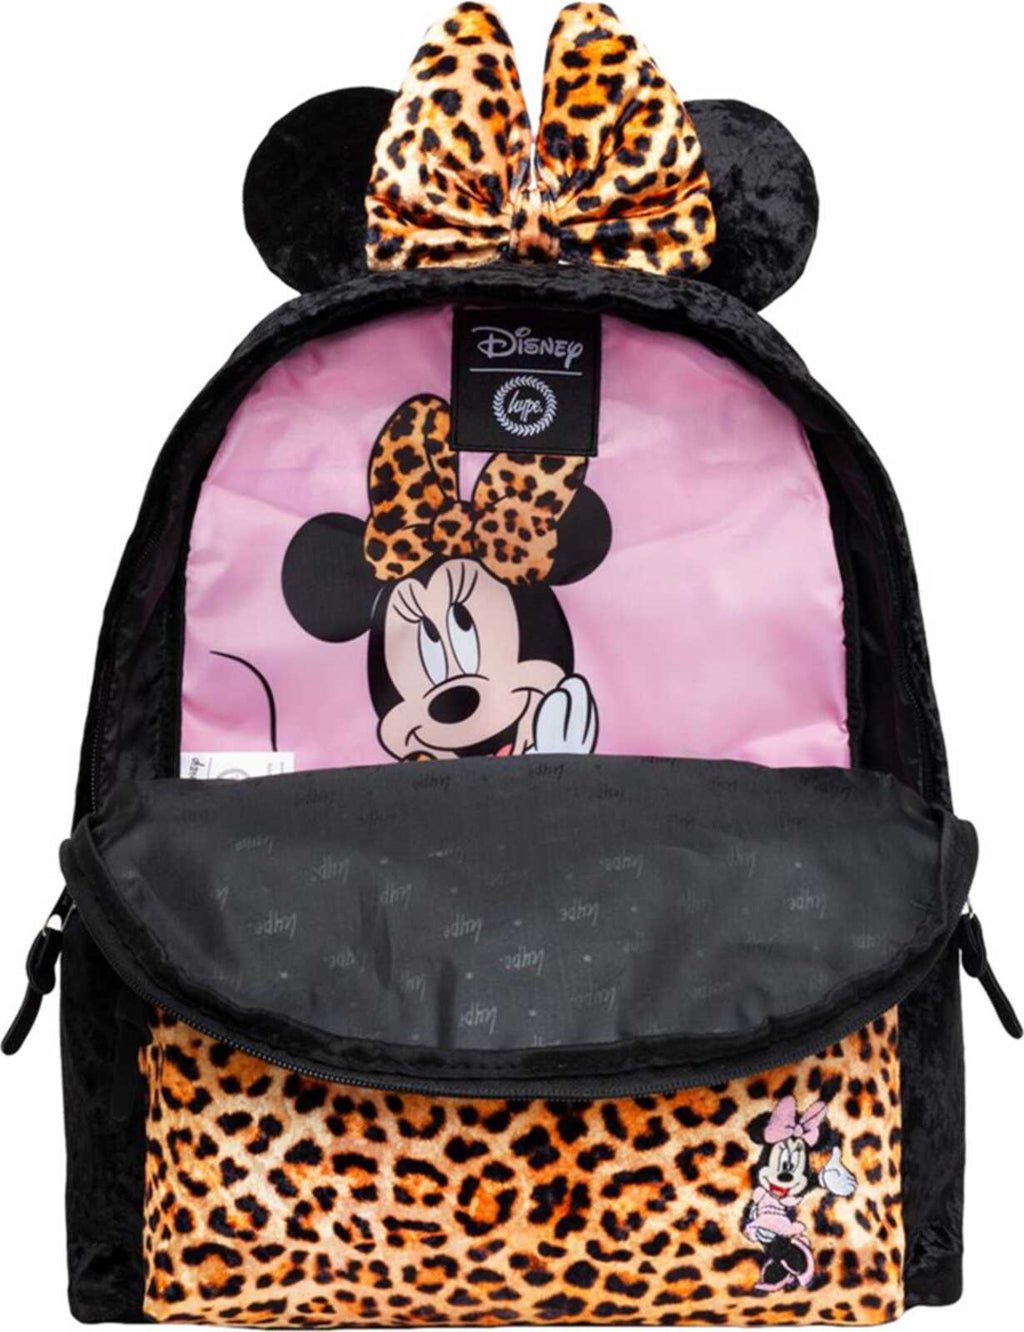 Hype Disney Minnie Leopard Backpack Bag Black